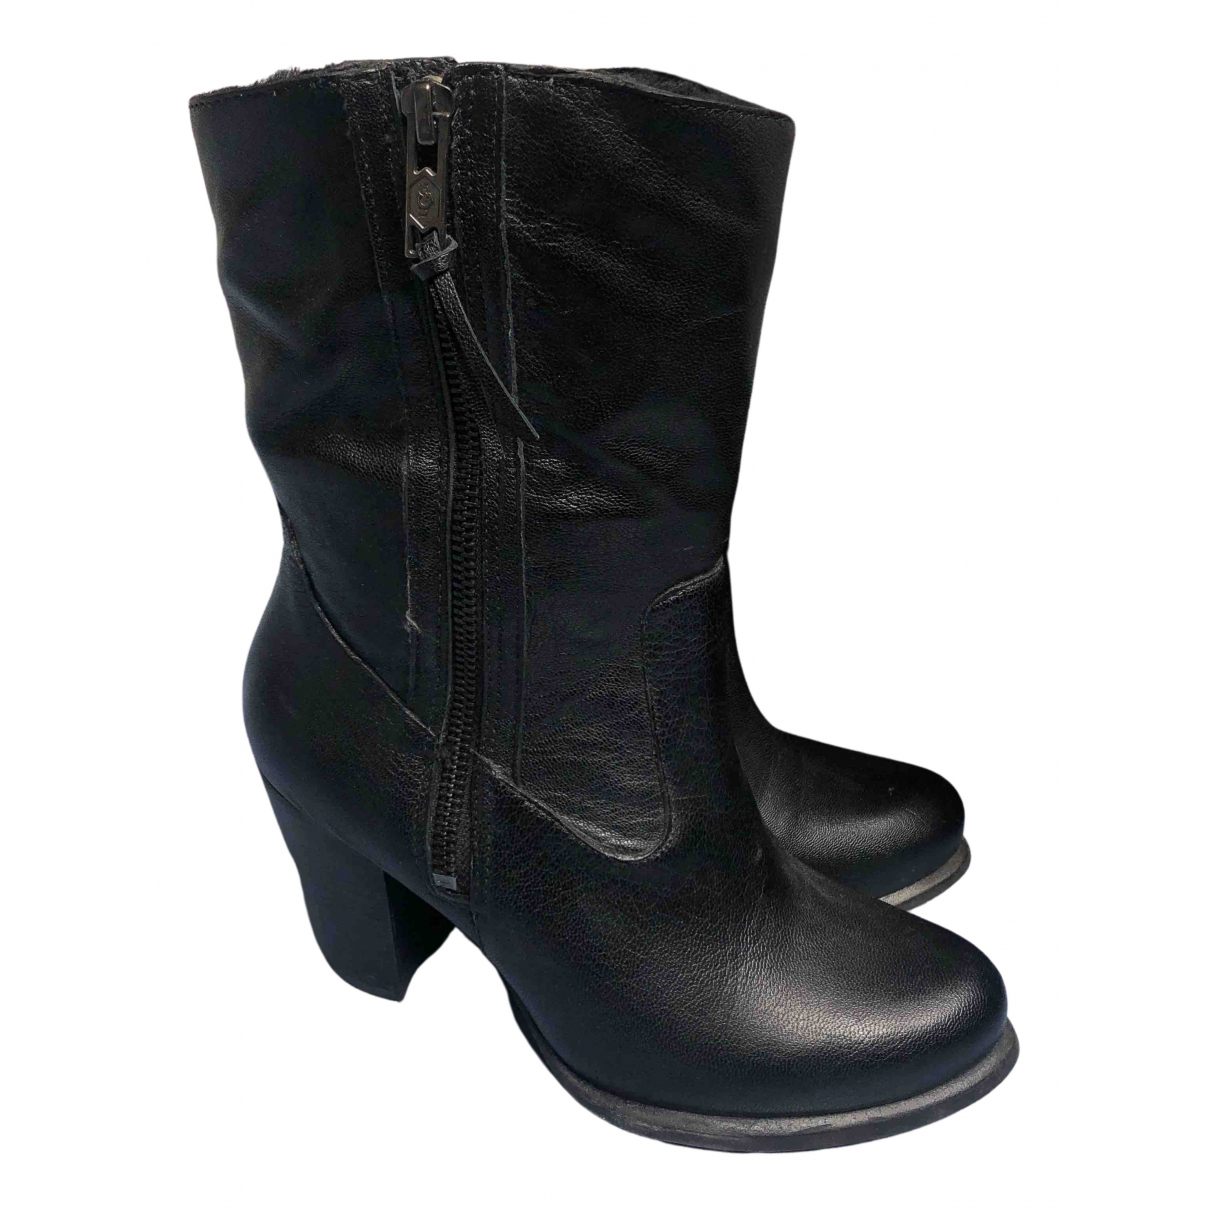 Ugg N Black Patent leather Boots for Women 36 EU